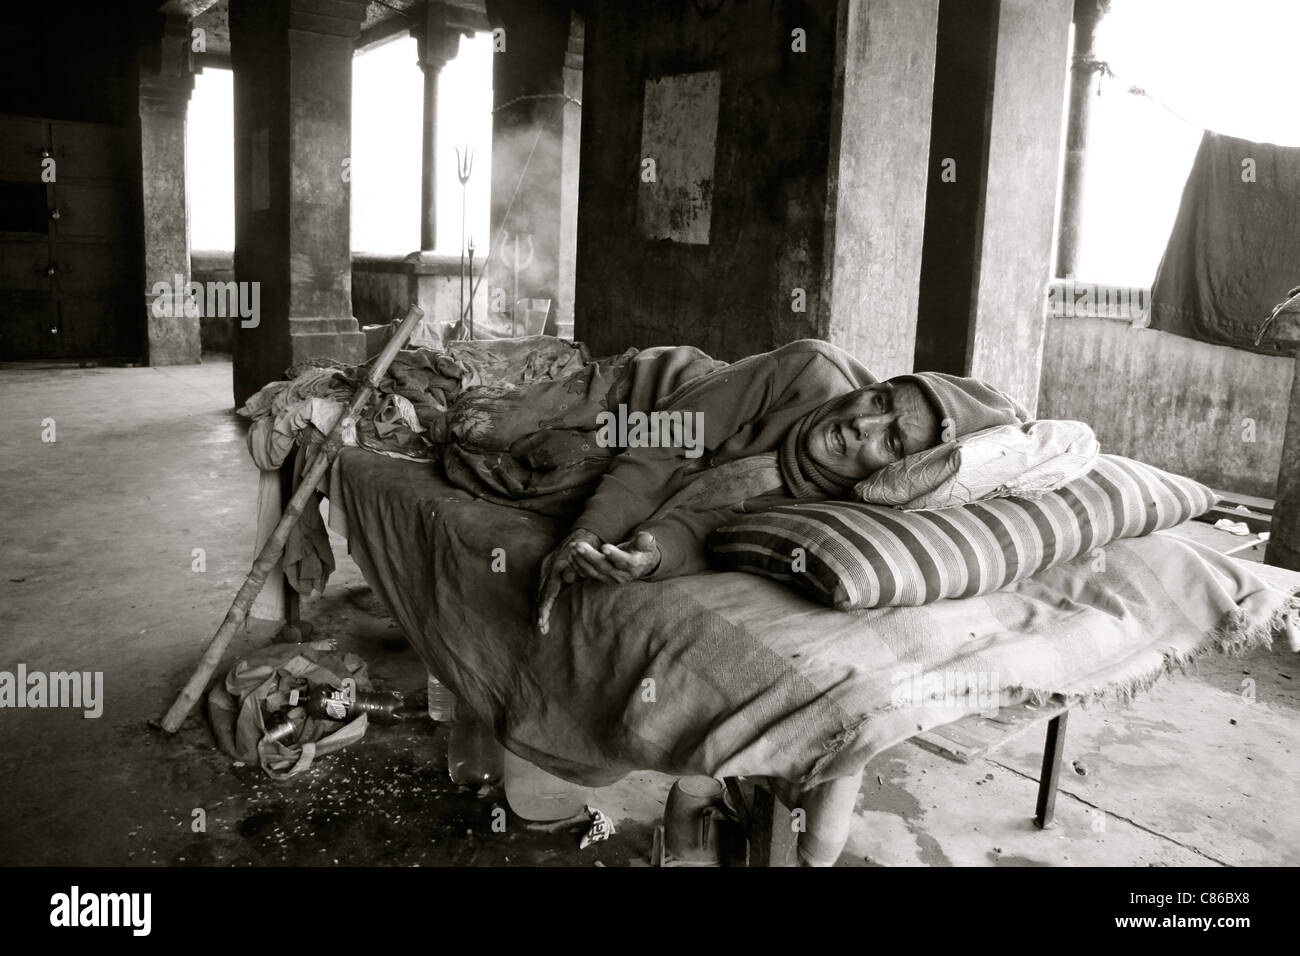 A dying woman lies on a bed in a derelict building, Varanasi, India - Stock Image